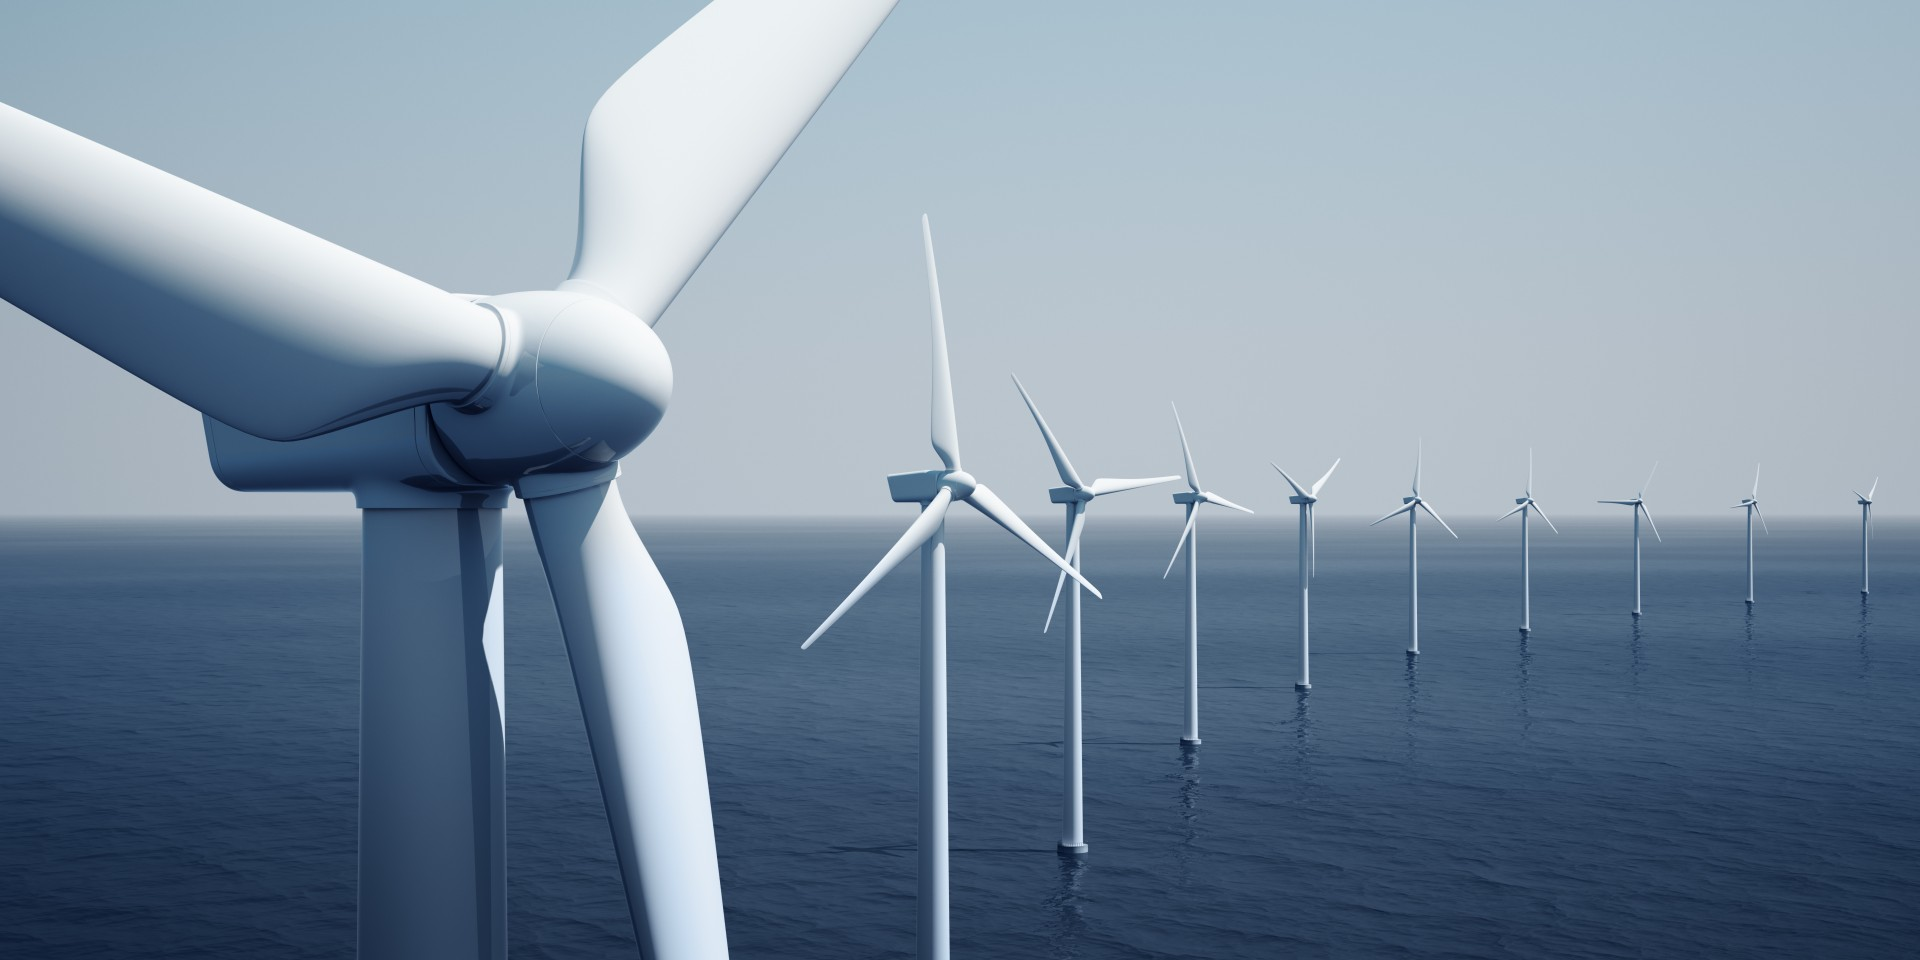 Covestro supplies the offshore wind industry with materials that improve the service life of the systems installed in wind farms by protecting underwater cables, cable kink protection, turbine protection and others. (Source: Zentilia – stock.adobe.com)